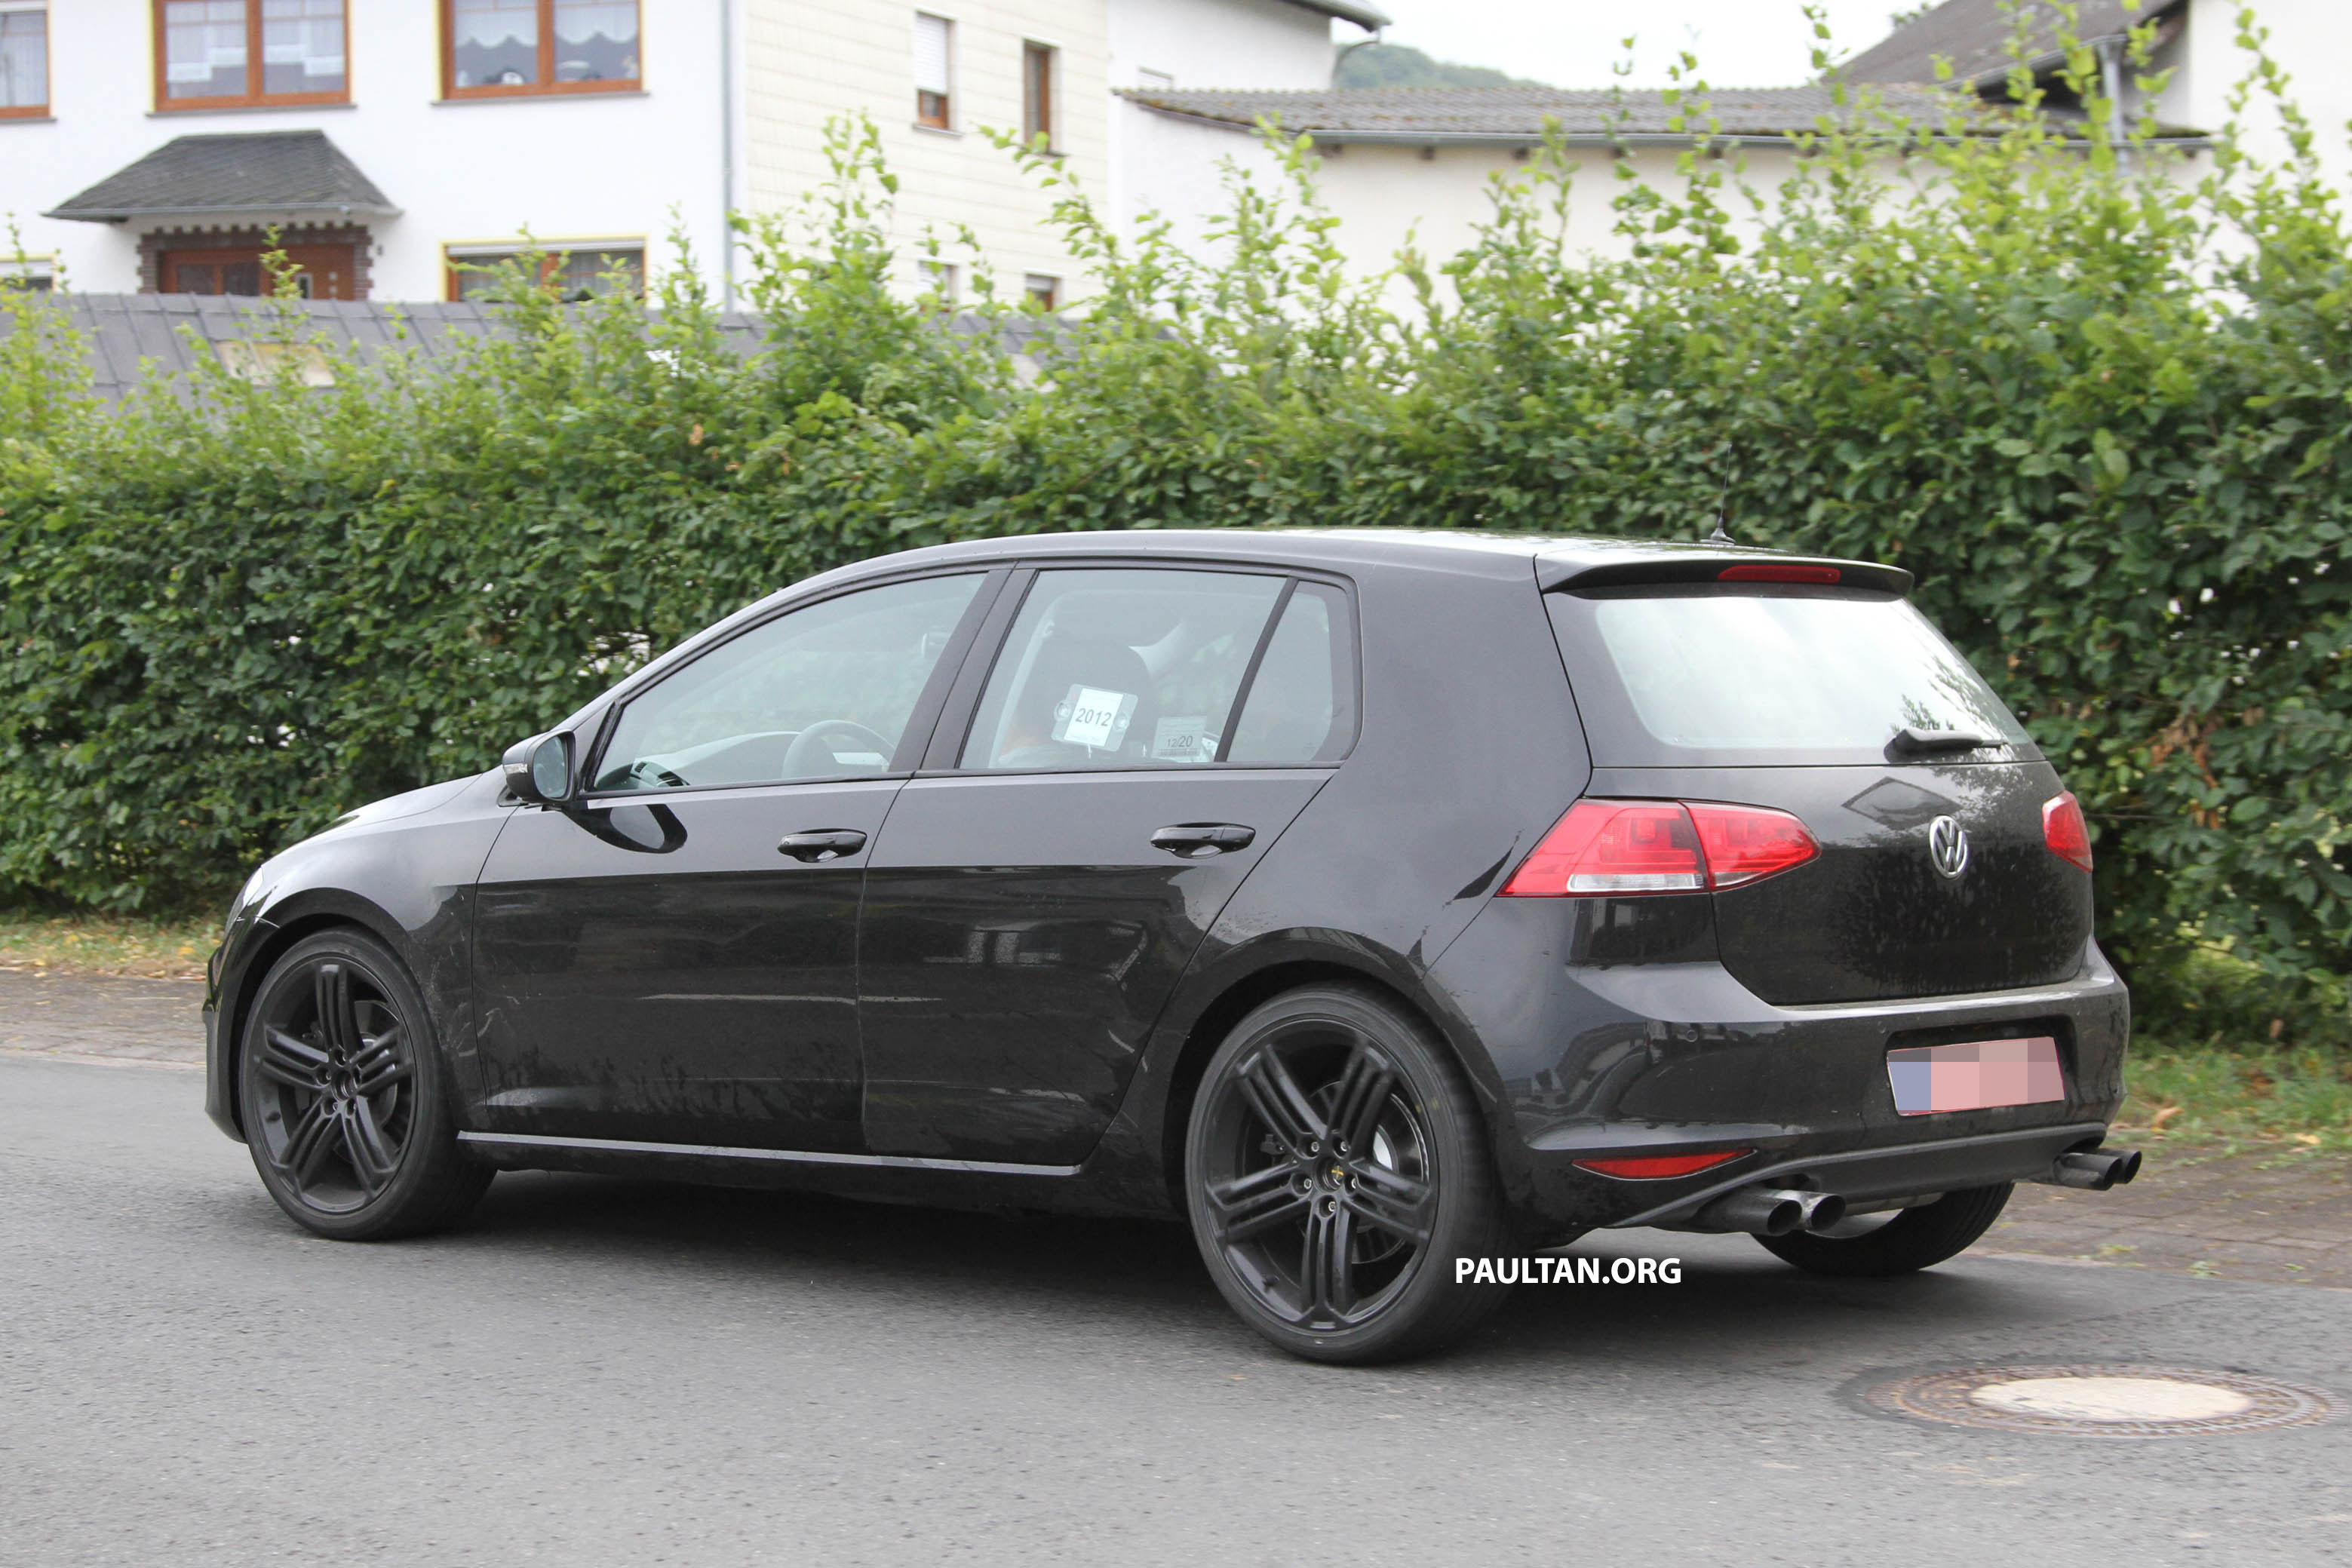 Mk7 Golf R >> Mk7 Volkswagen Golf R prototype testing undisguised Paul Tan - Image 130634